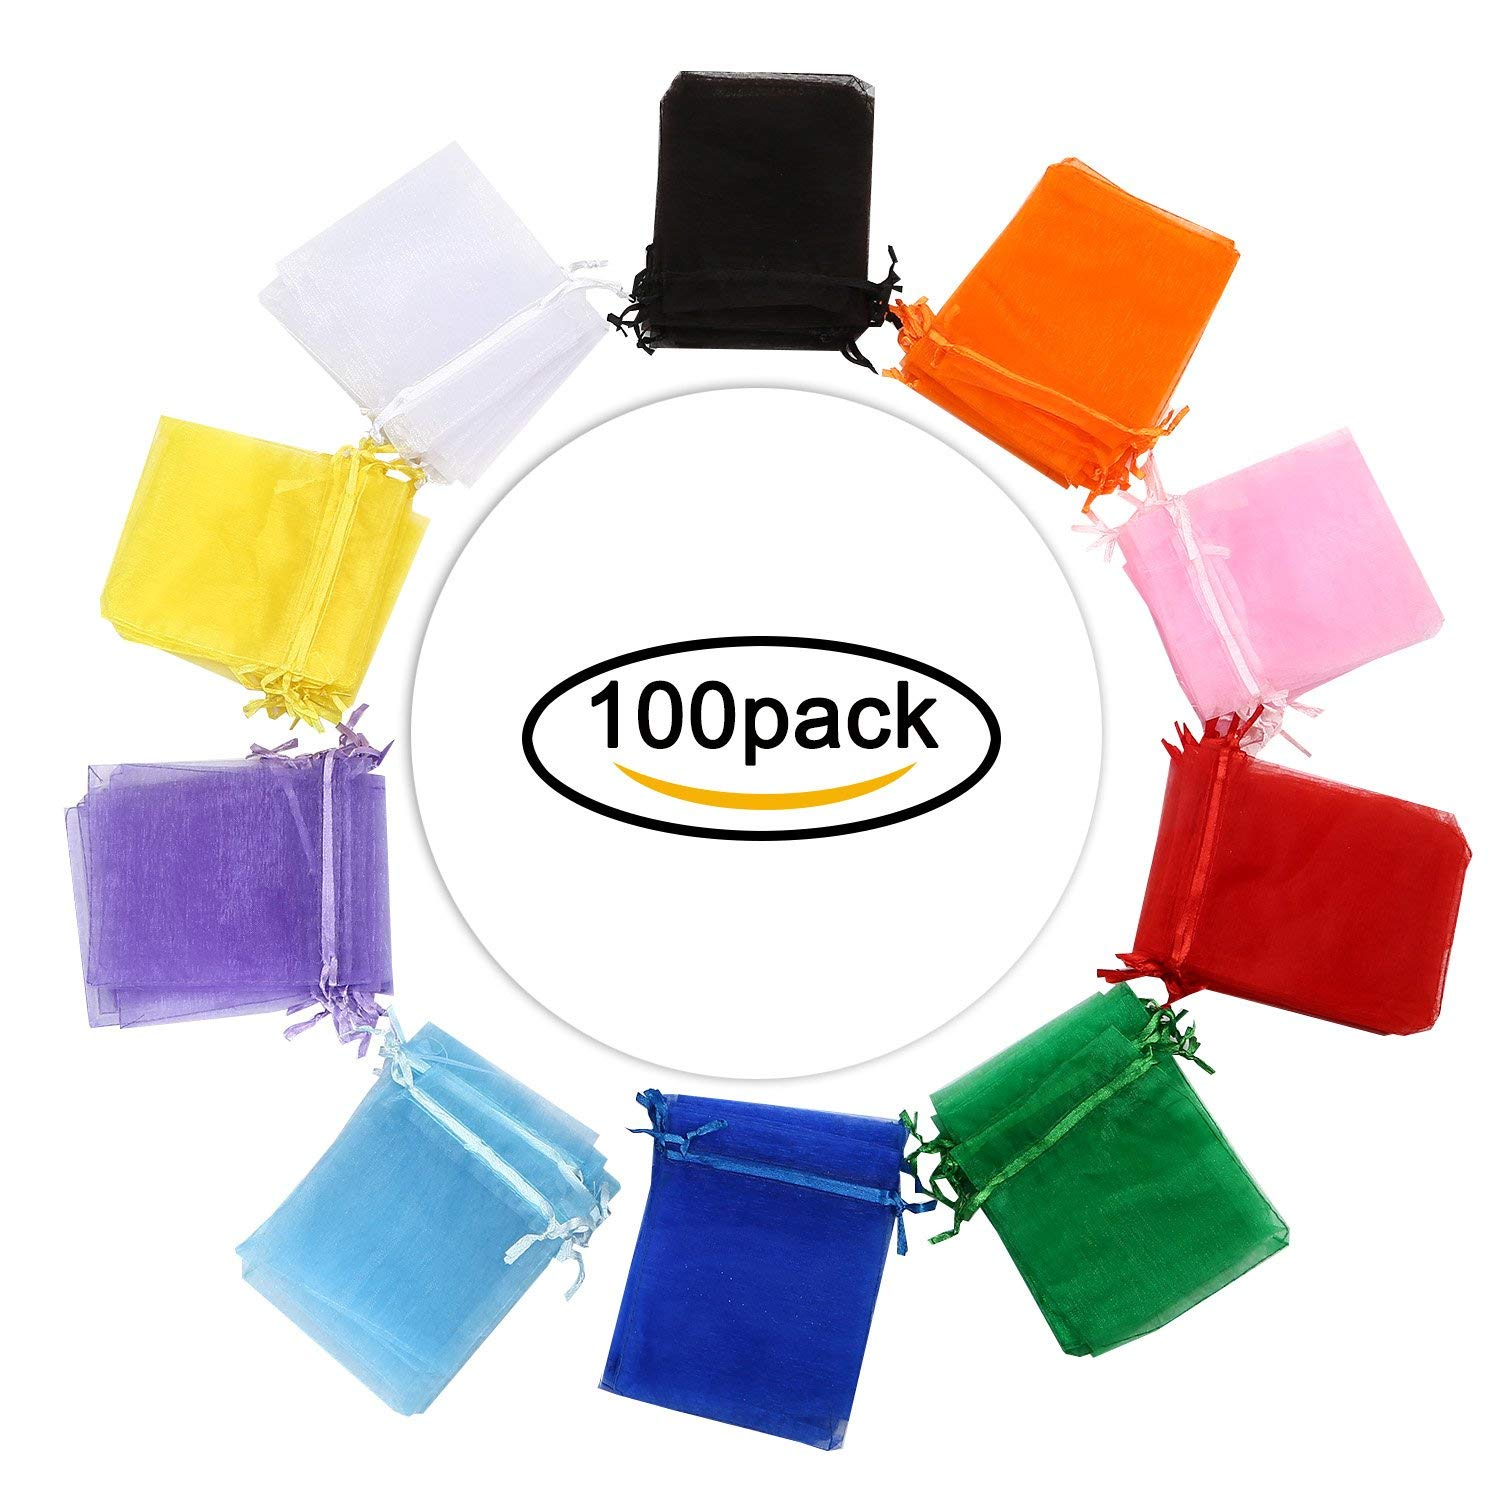 Hengu 100Pcs 4x5 inches Assorted Colors Sheer Drawstring Organza Candy Jewelry Pouches Wedding Party Christmas Favor Gift Bags